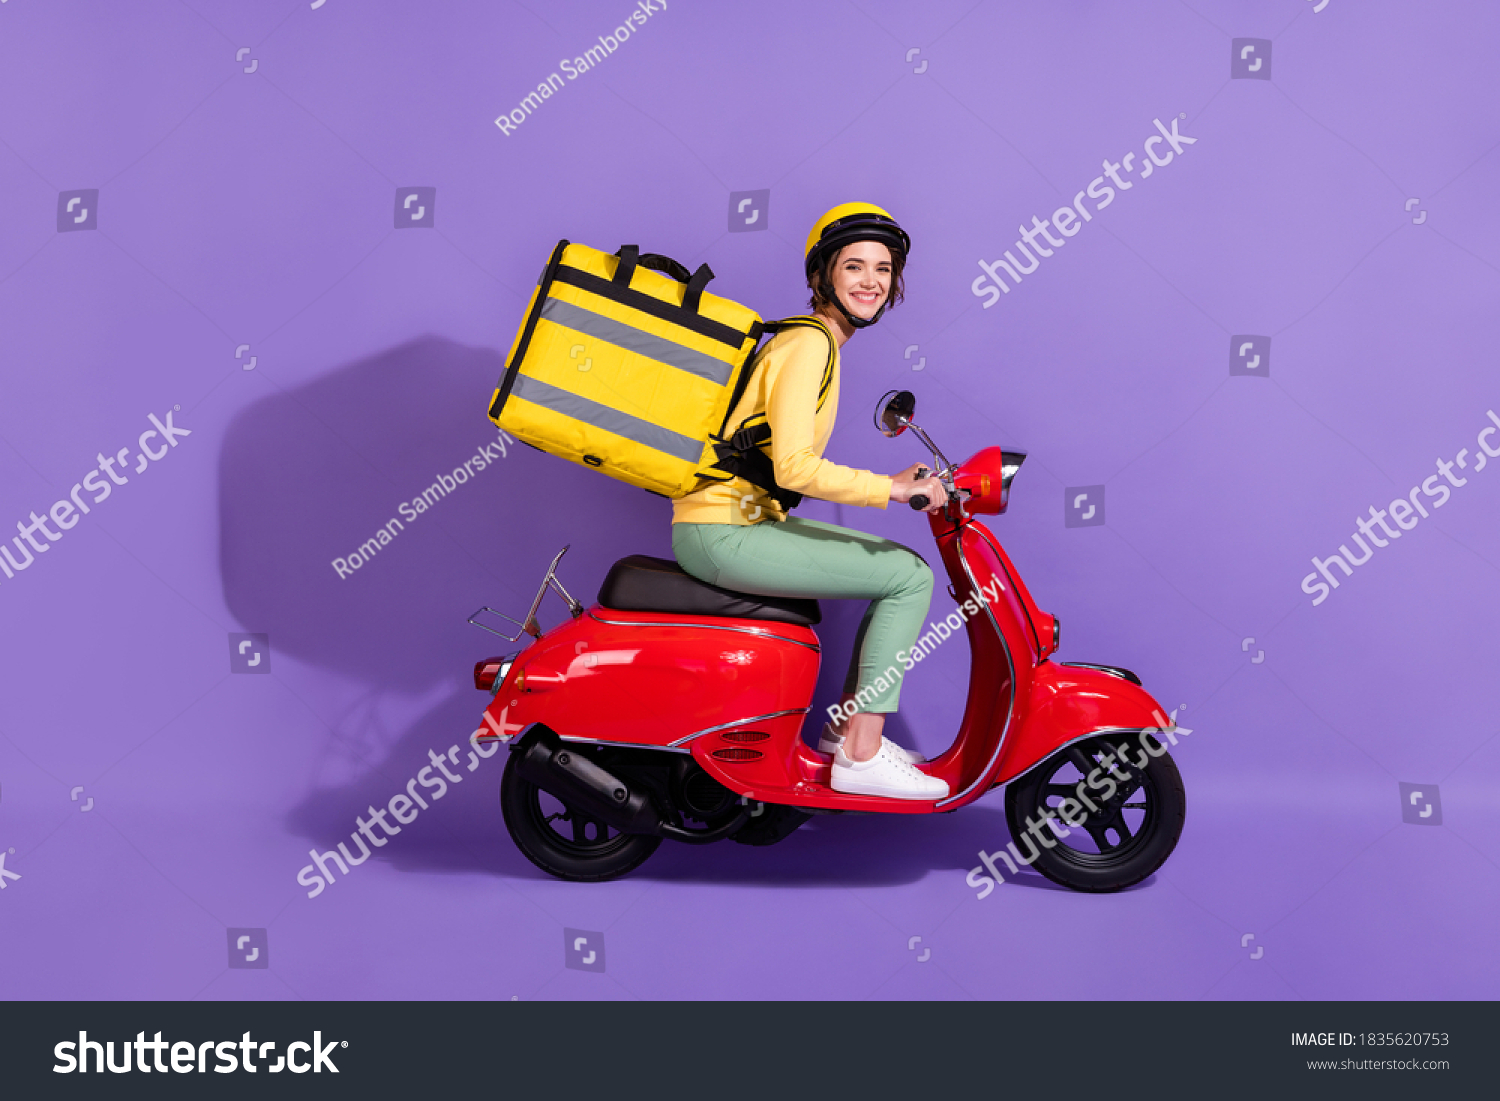 Profile side view of her she nice attractive cheerful girl riding bike delivering, bringing cafe food order fast speed express isolated bright vivid shine vibrant lilac violet purple color background #1835620753